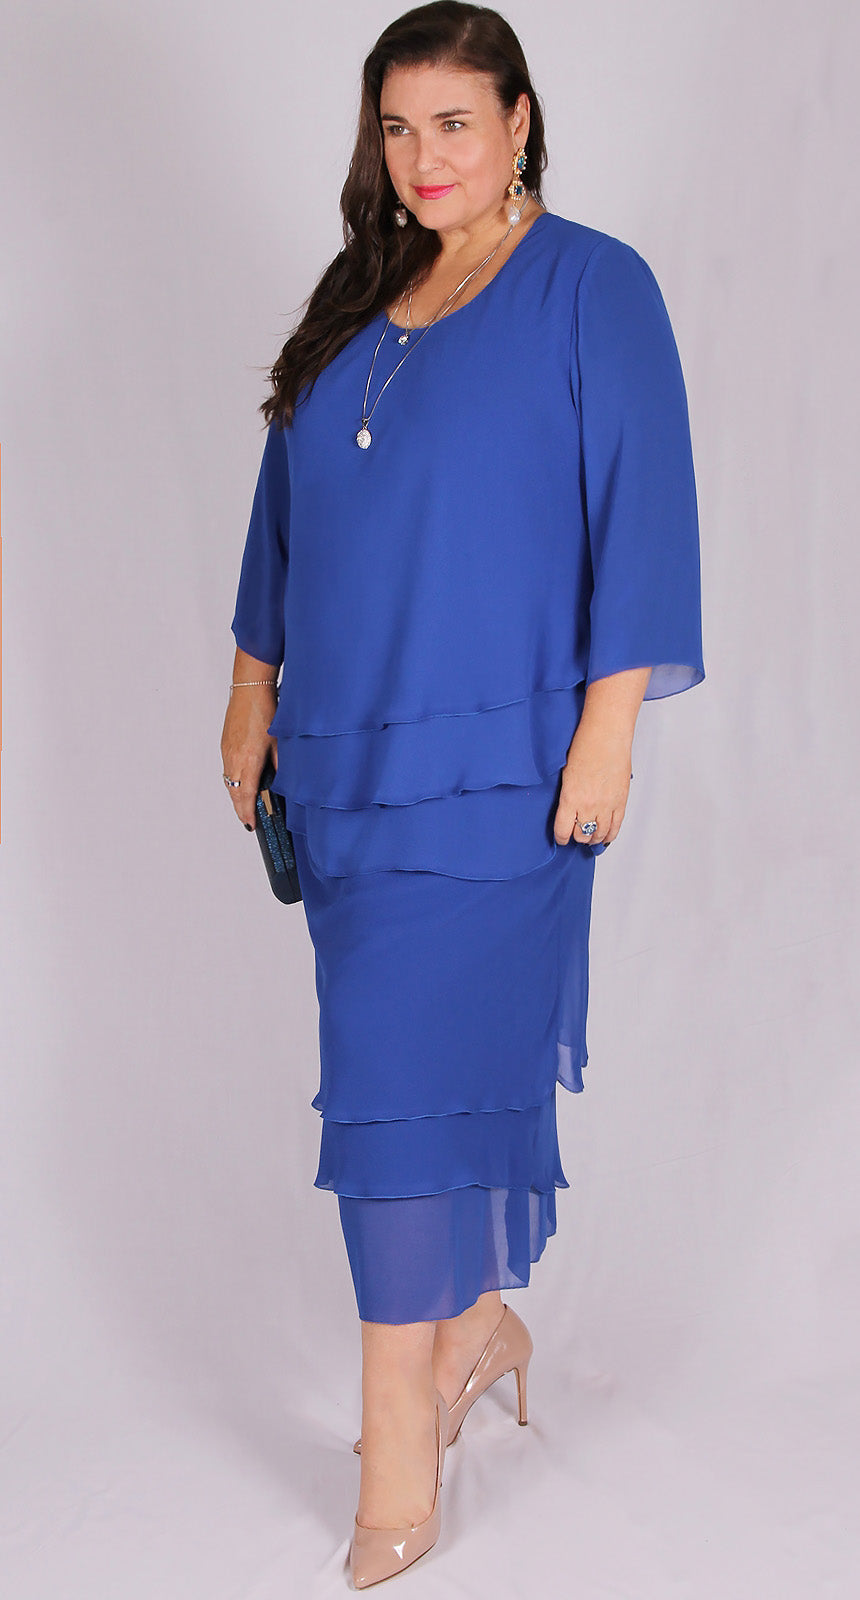 Rosaline Chiffon Layer Skirt Royal Blue